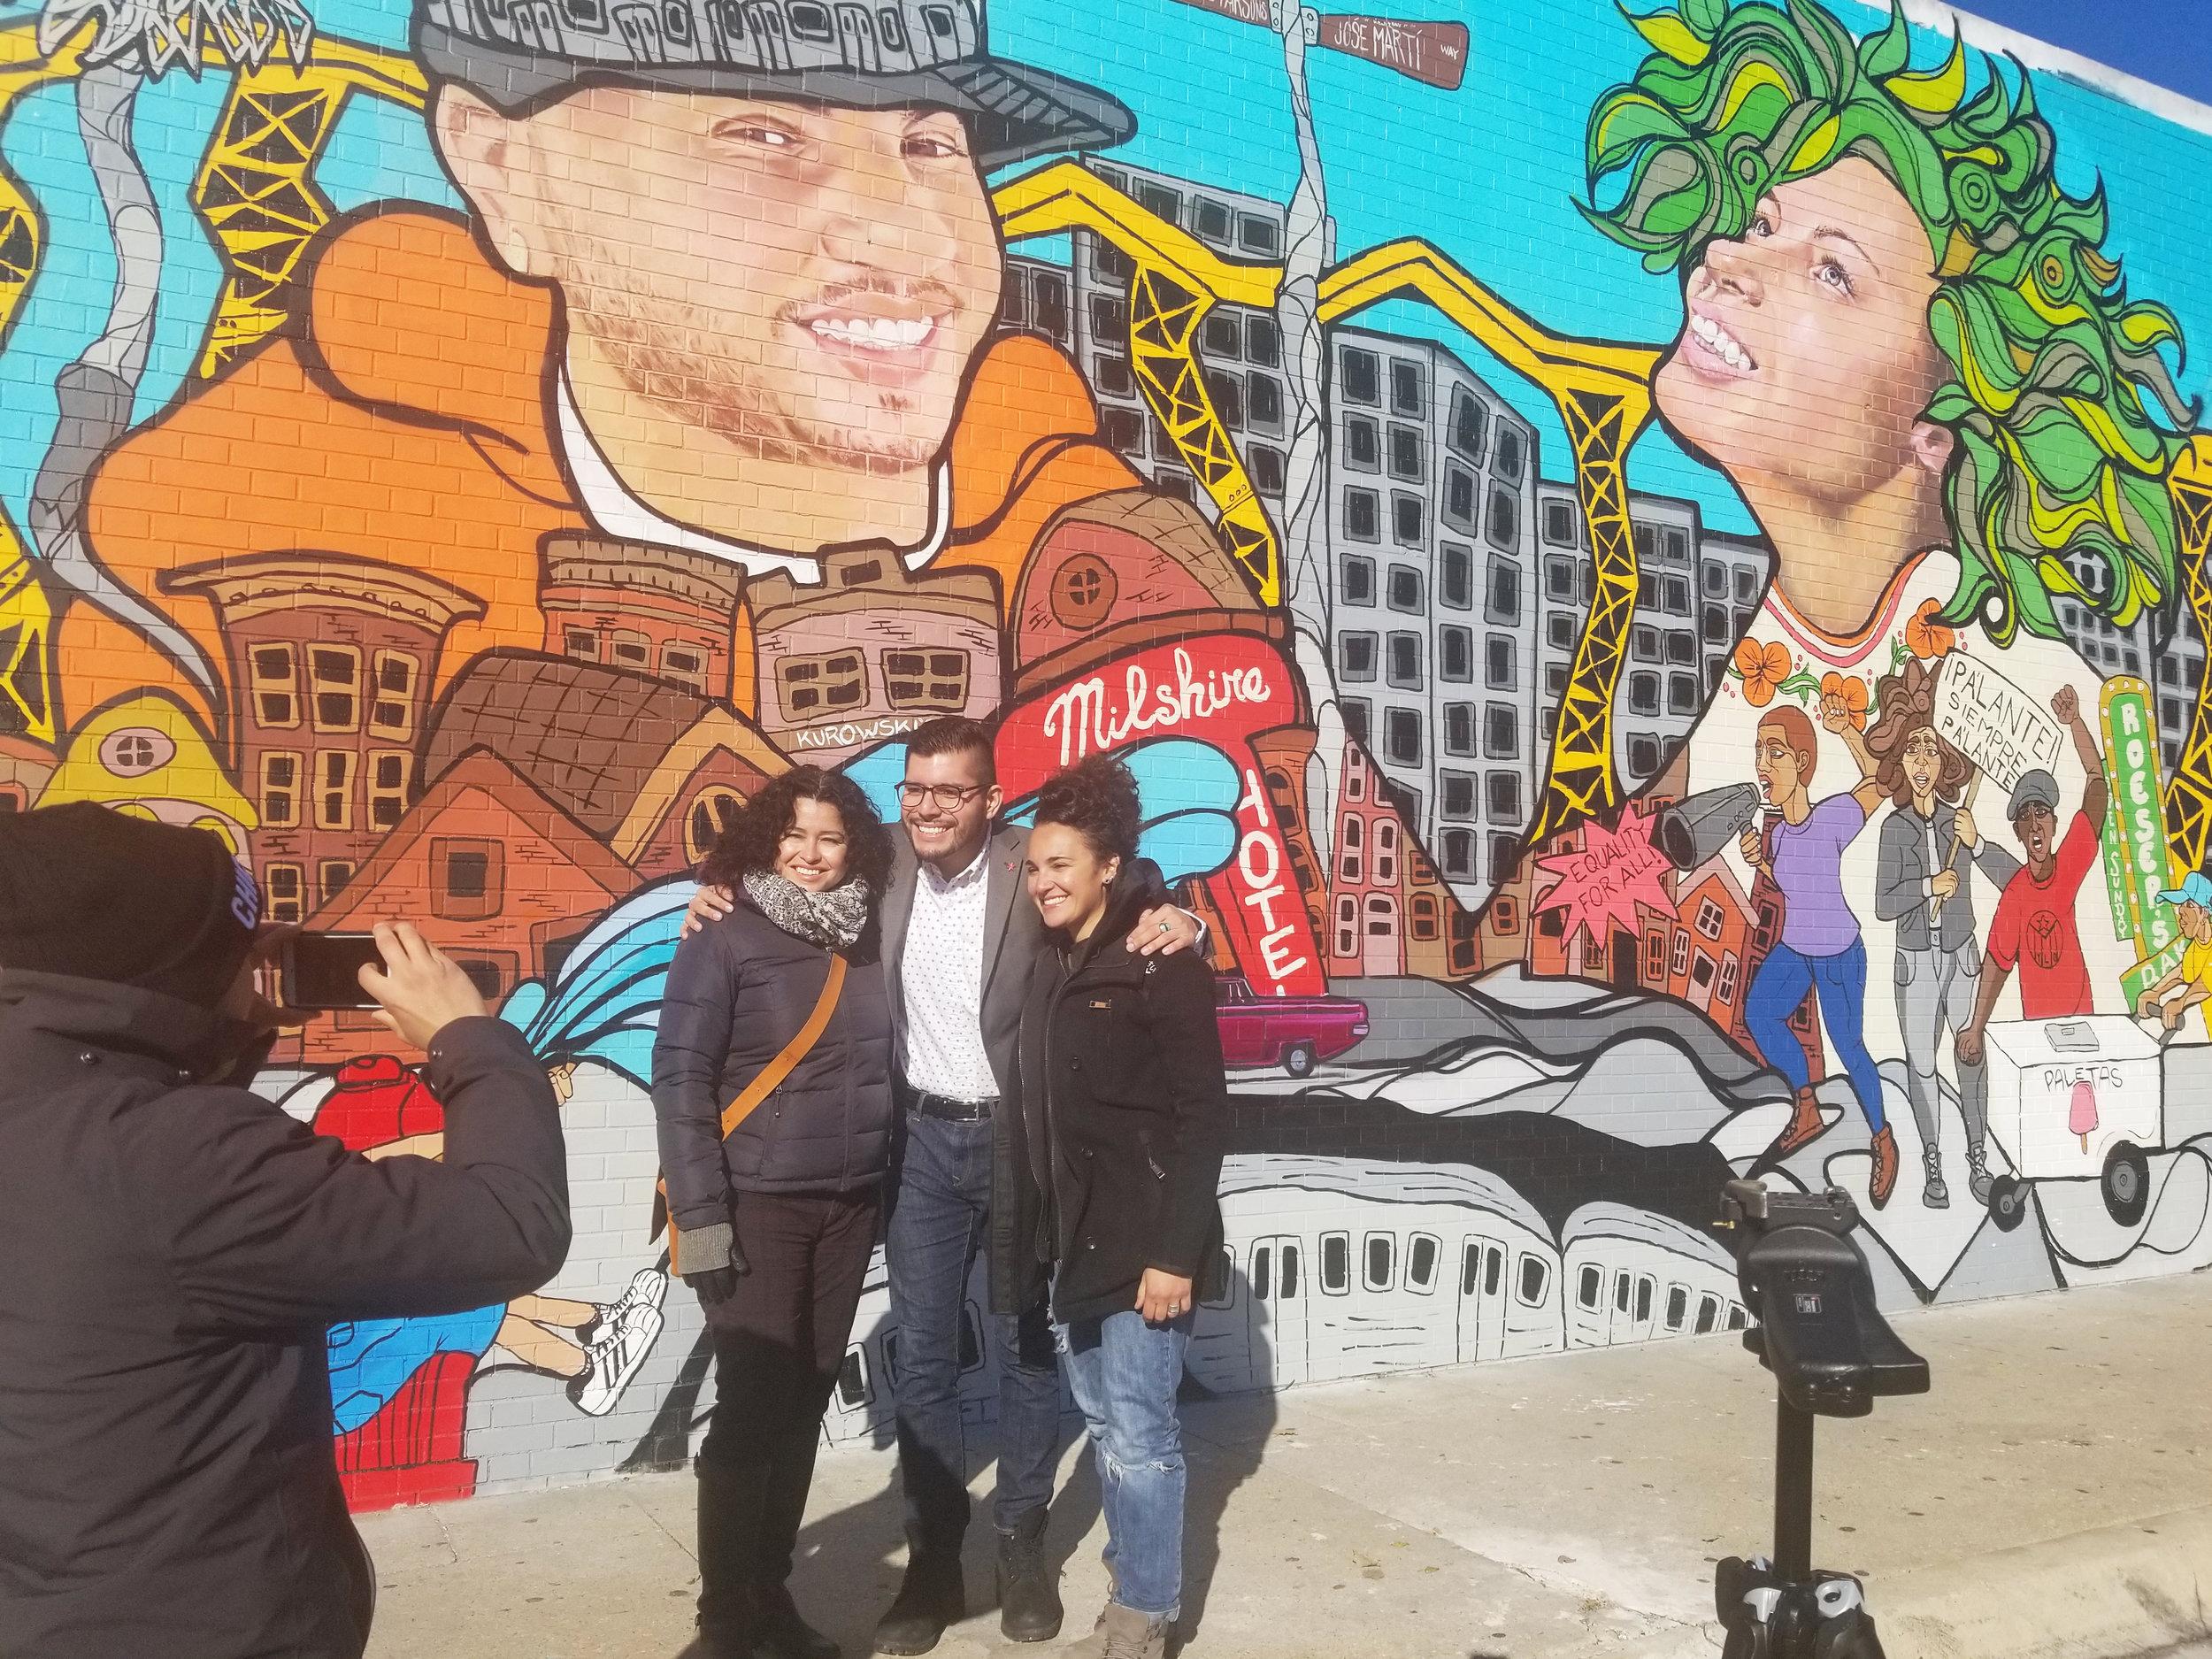 Copy of Copy of LOGAN SQUARE MURAL UNVELING